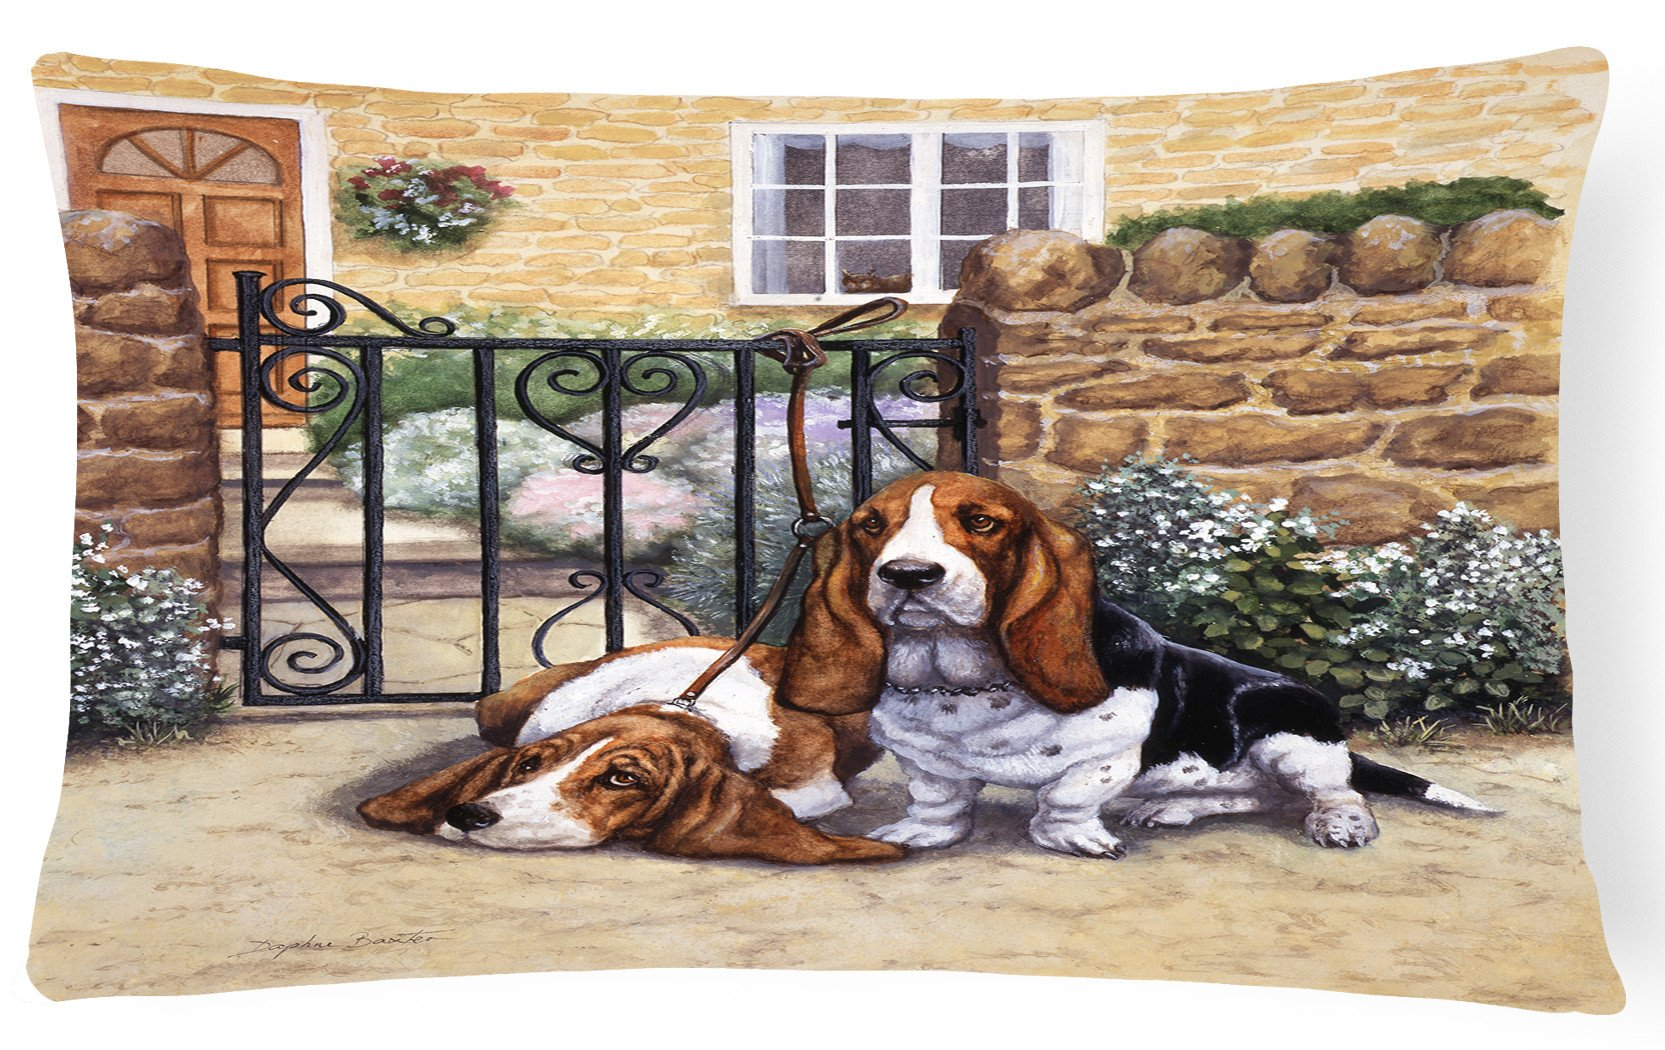 Basset Hound at the gate Fabric Decorative Pillow BDBA0312PW1216 by Caroline's Treasures